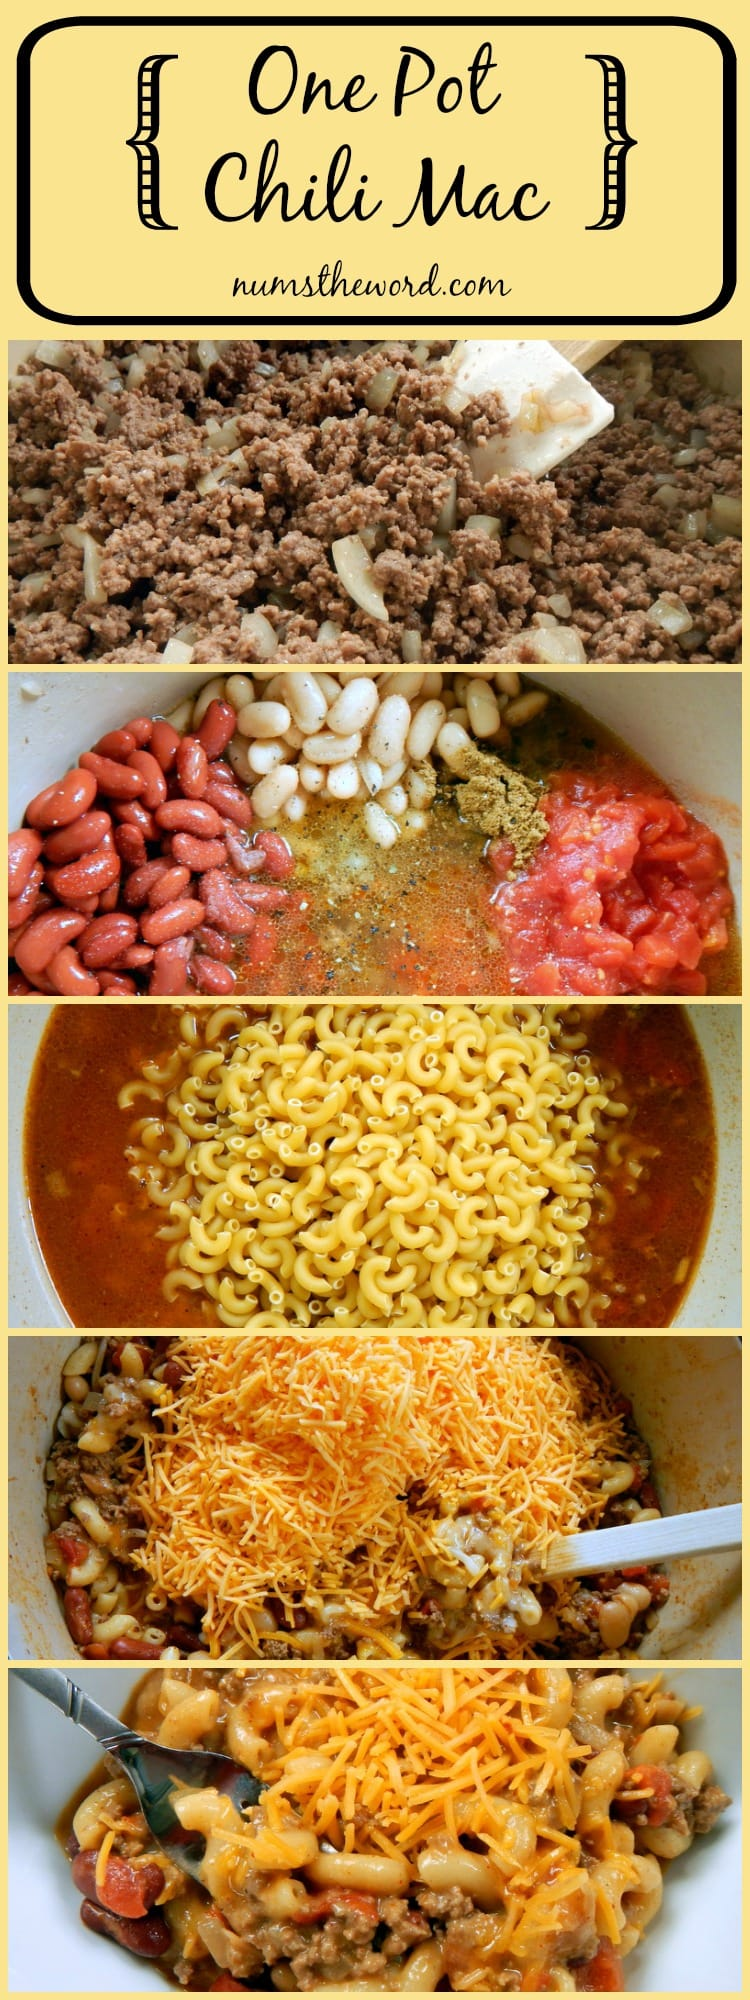 One Pot Chili Mac - pinterest collage of images